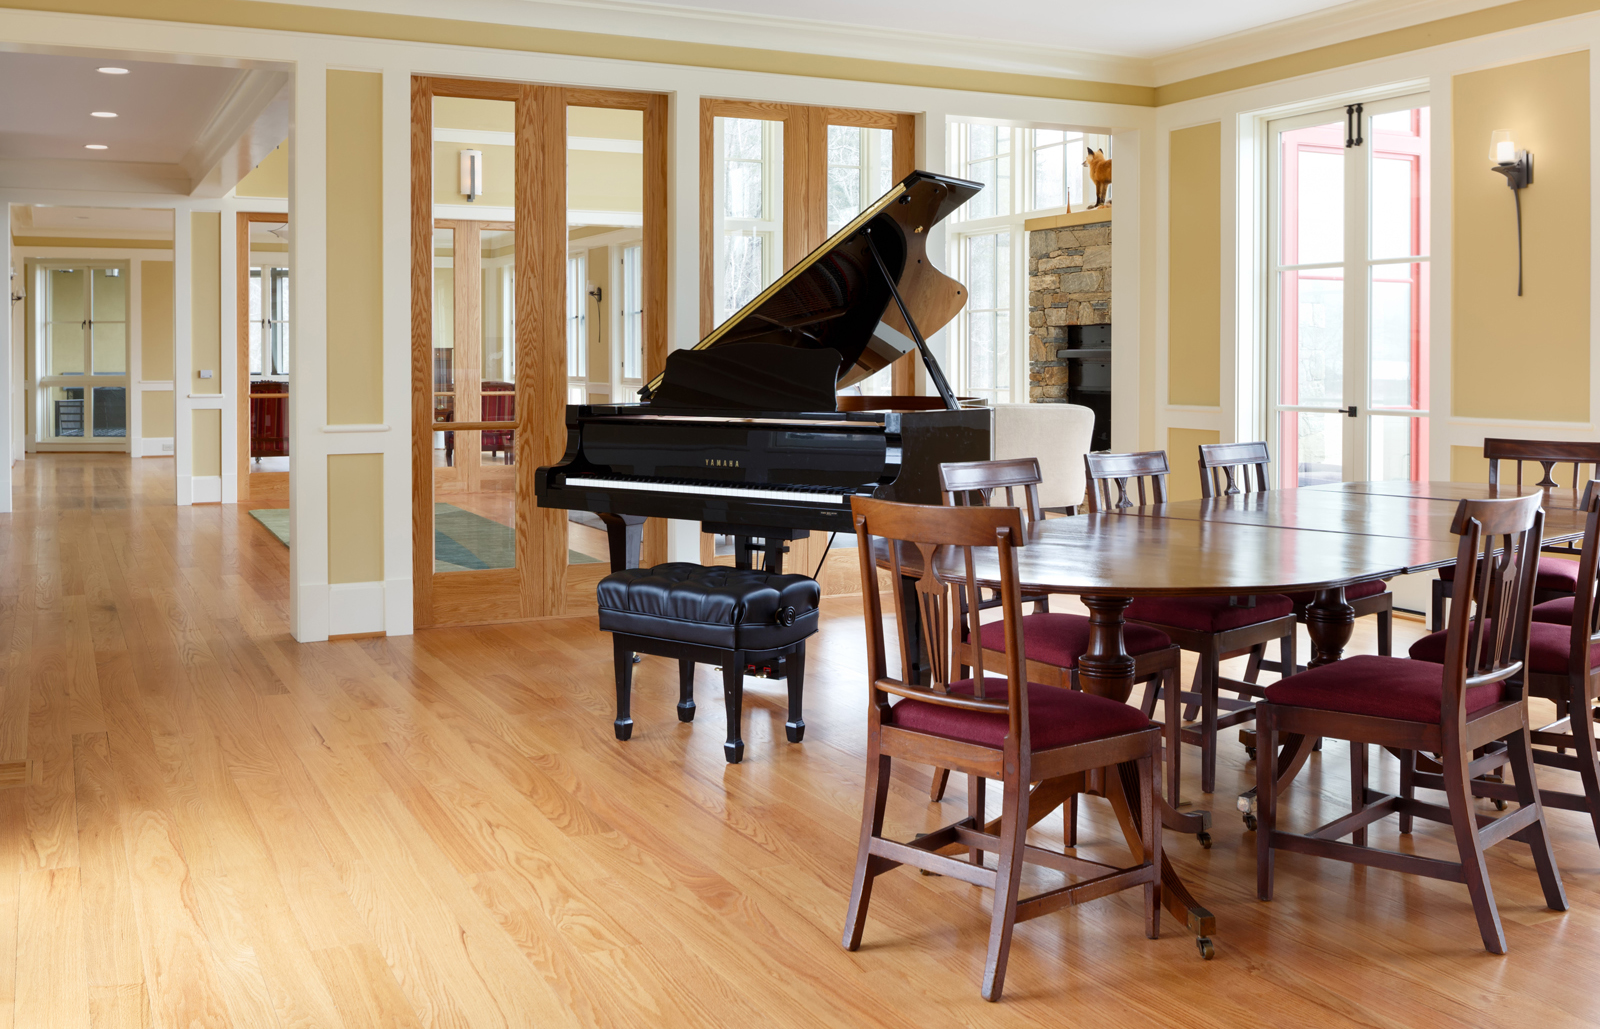 Music Room extends off the Great Room